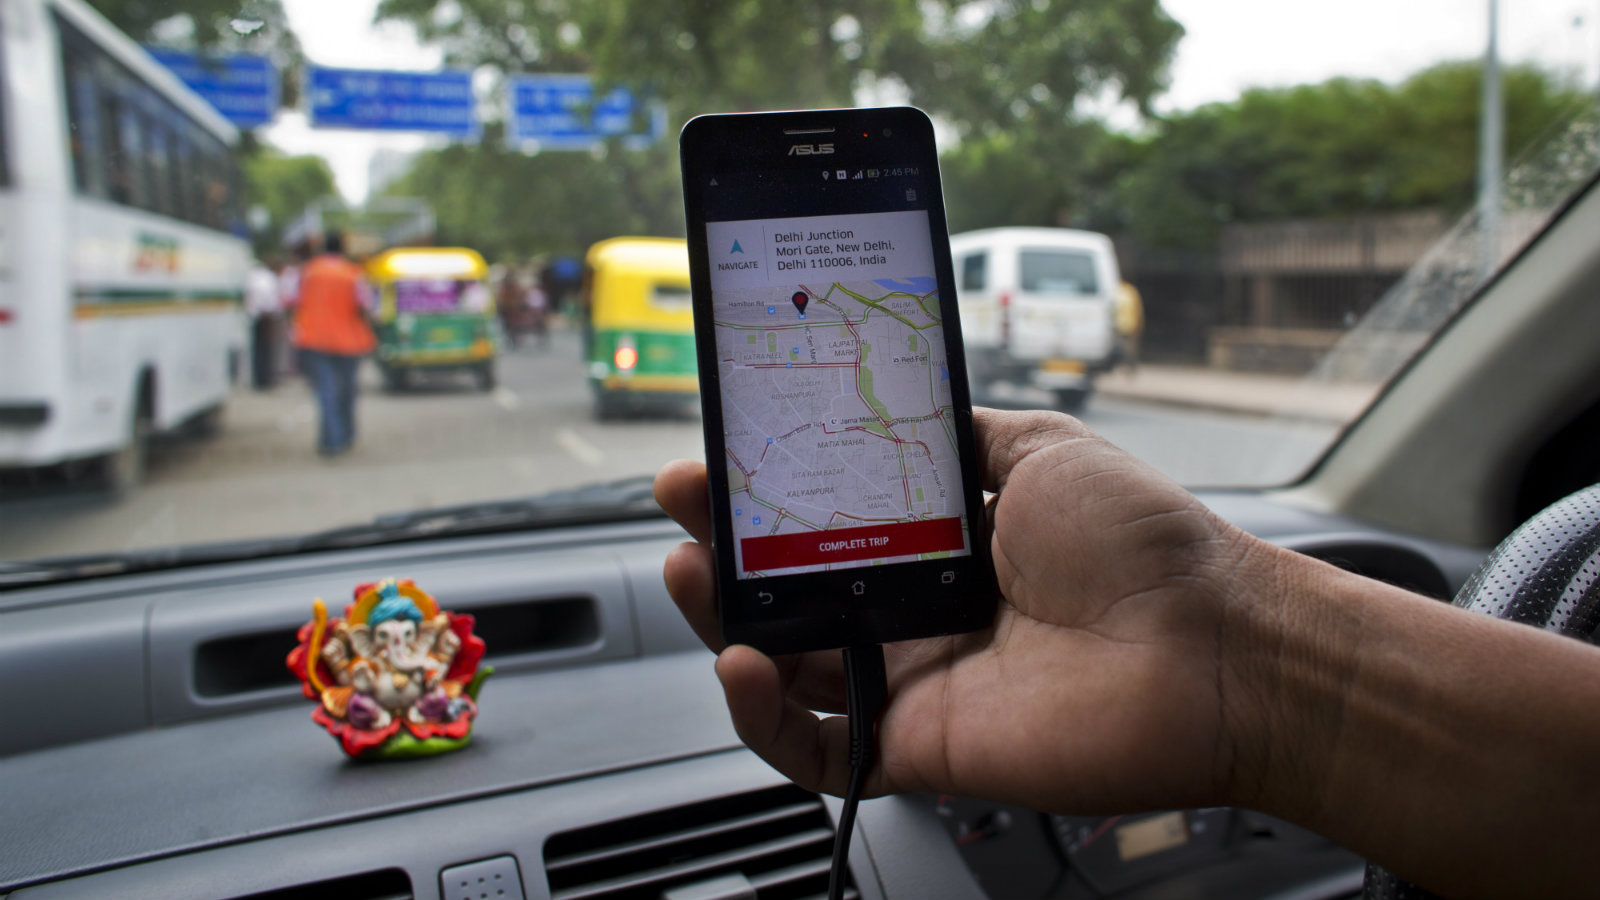 An Indian cab driver displays the city map on a smartphone provided by Uber as he drives in New Delhi, India, Friday, July 31, 2015. Ride-hailing service Uber has announced a $1 billion investment for the Indian market for the next nine months as it hopes to expand services and products, news reports said Friday.